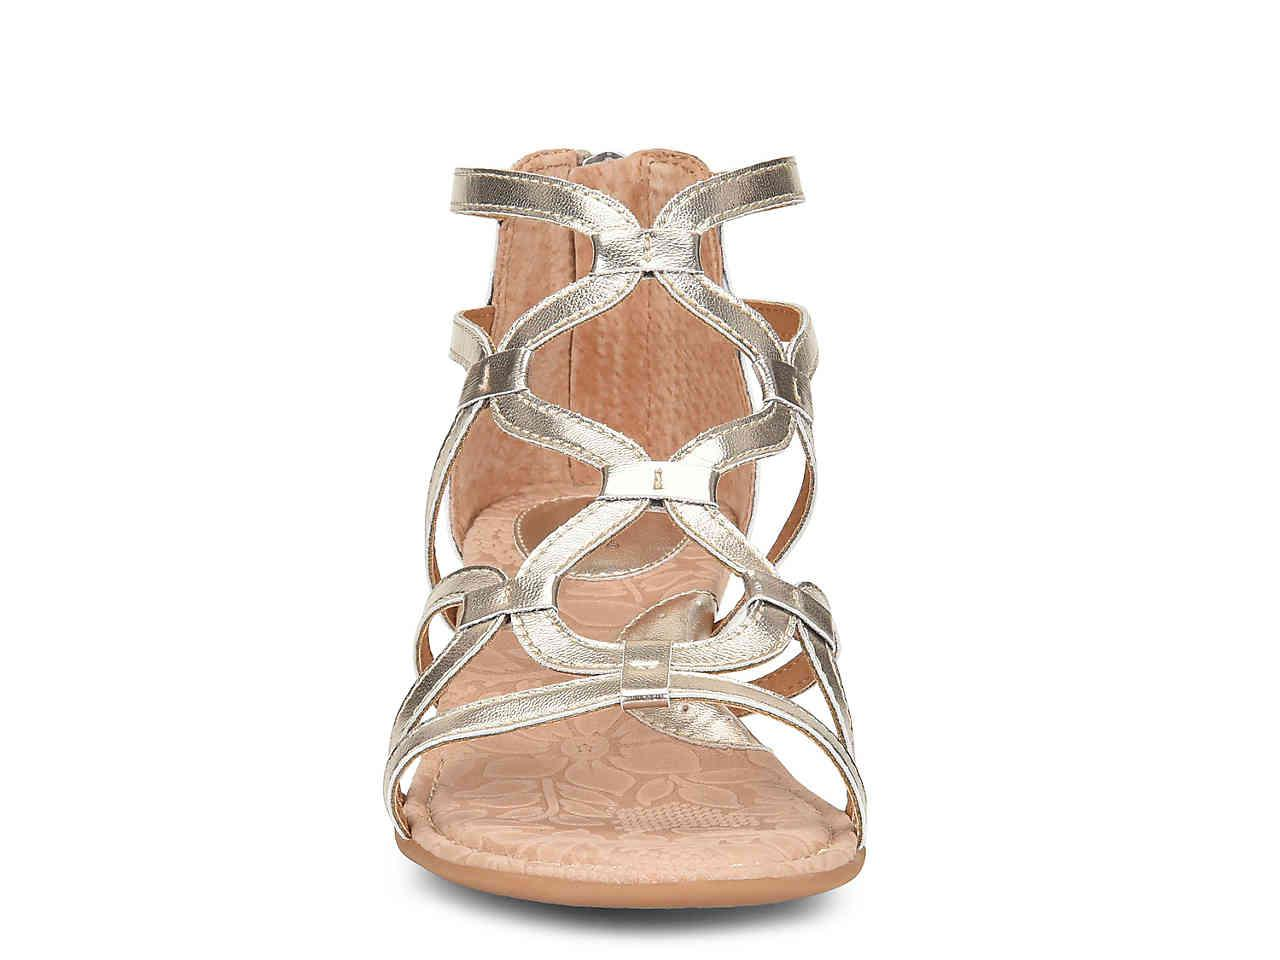 3f5e3504c691 Metallic Pawel Wedge Gladiator Sandal - Lyst. View fullscreen